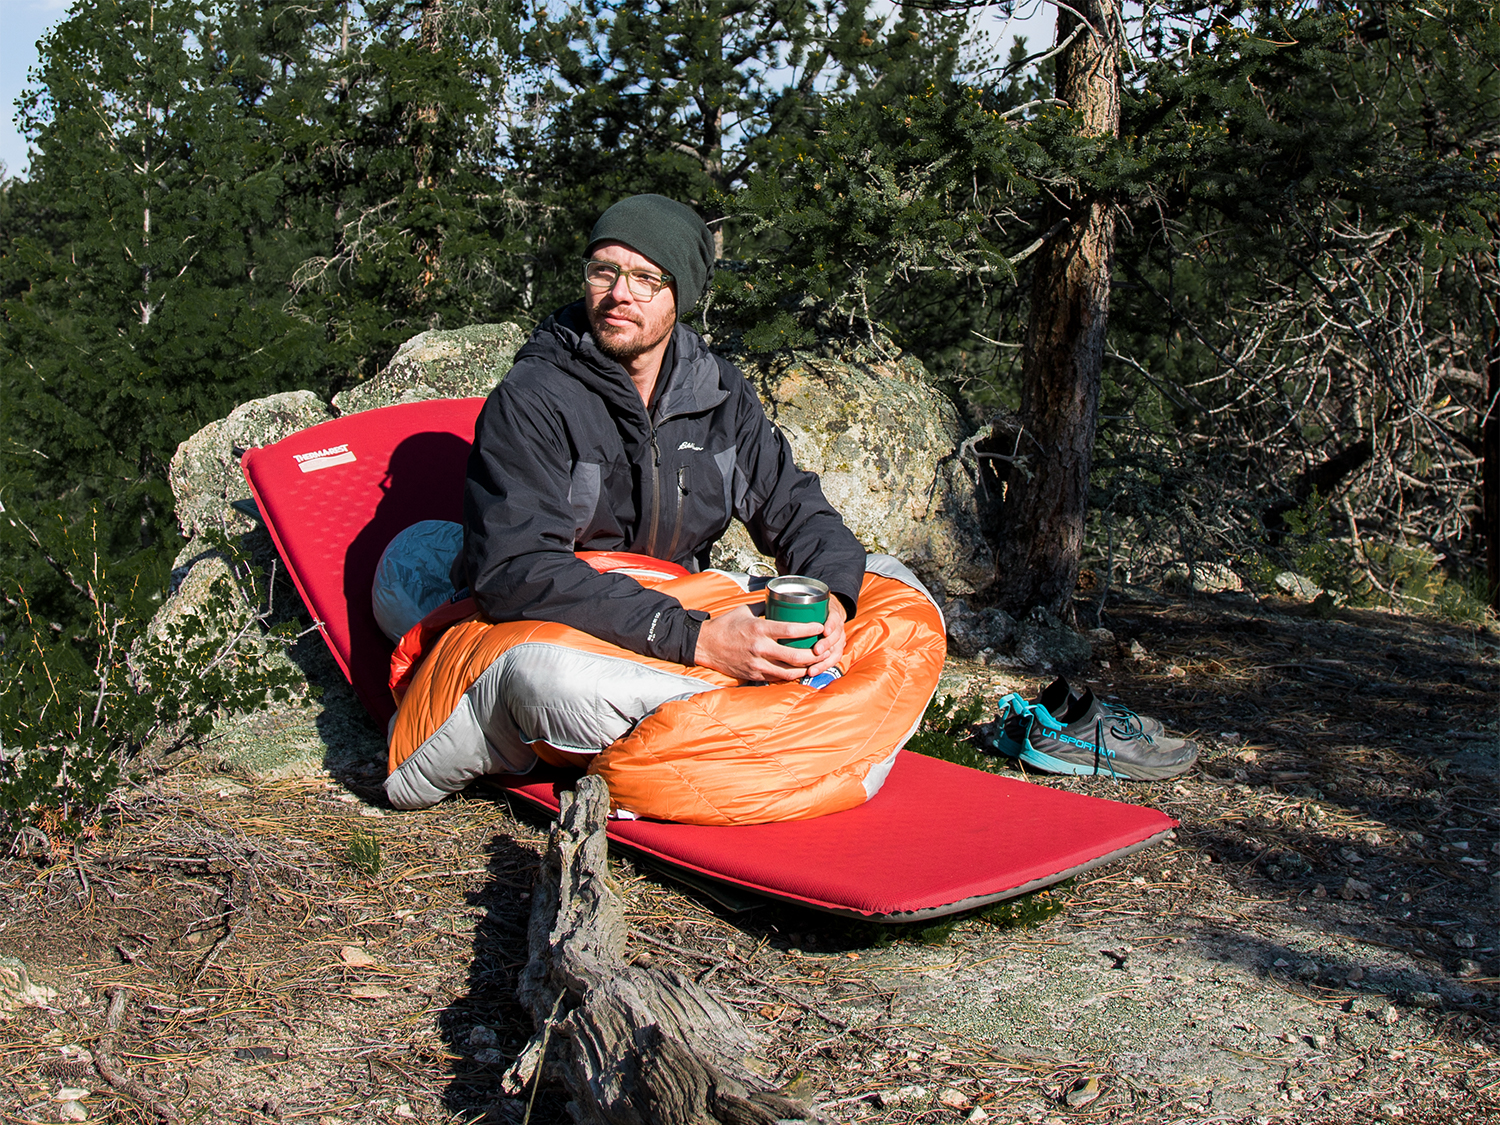 Man sitting in Big Agnes sleeping bag